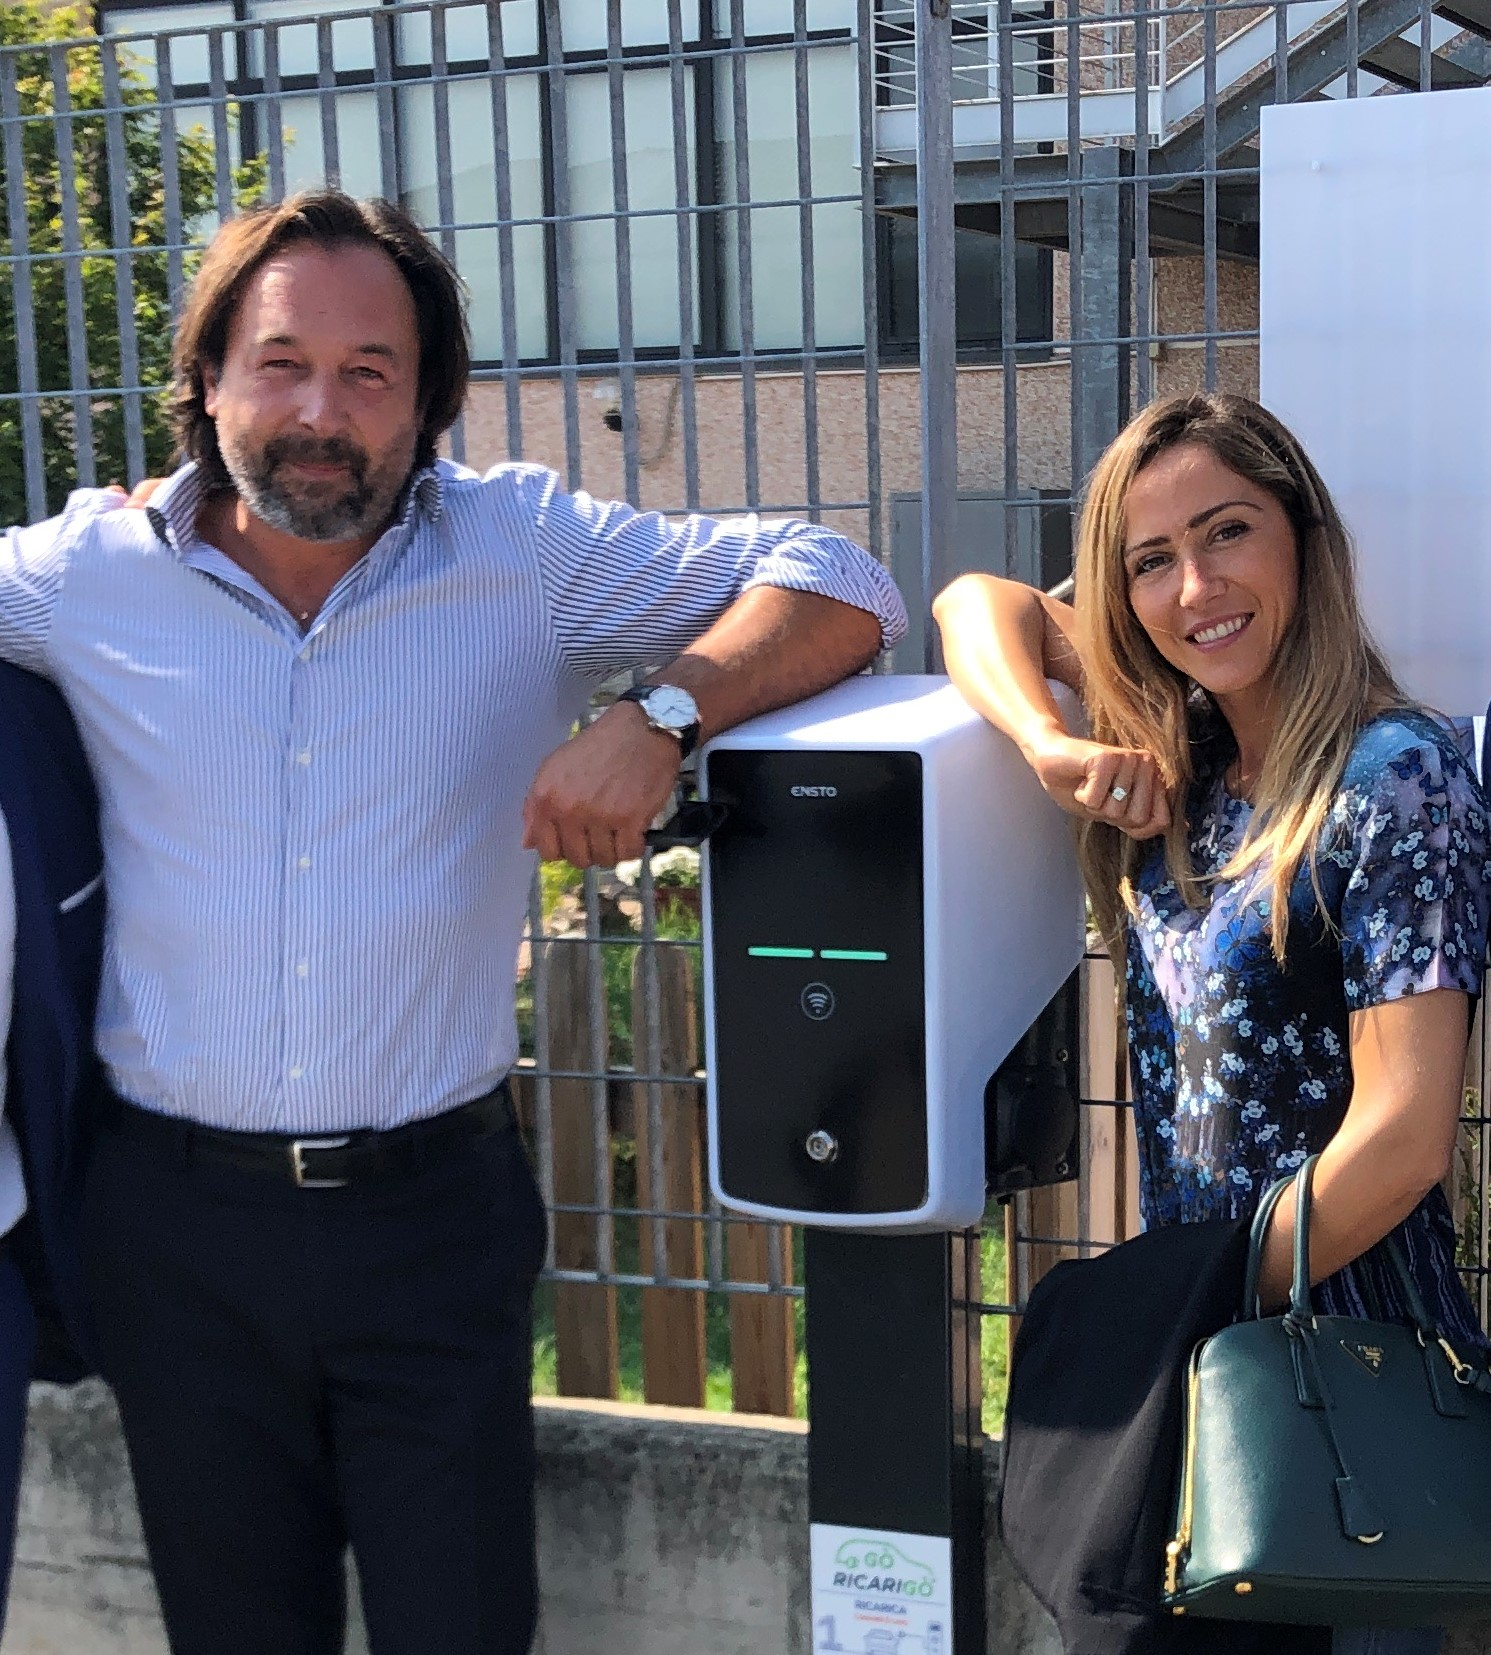 Enermia, la start-up che protegge l'ambiente